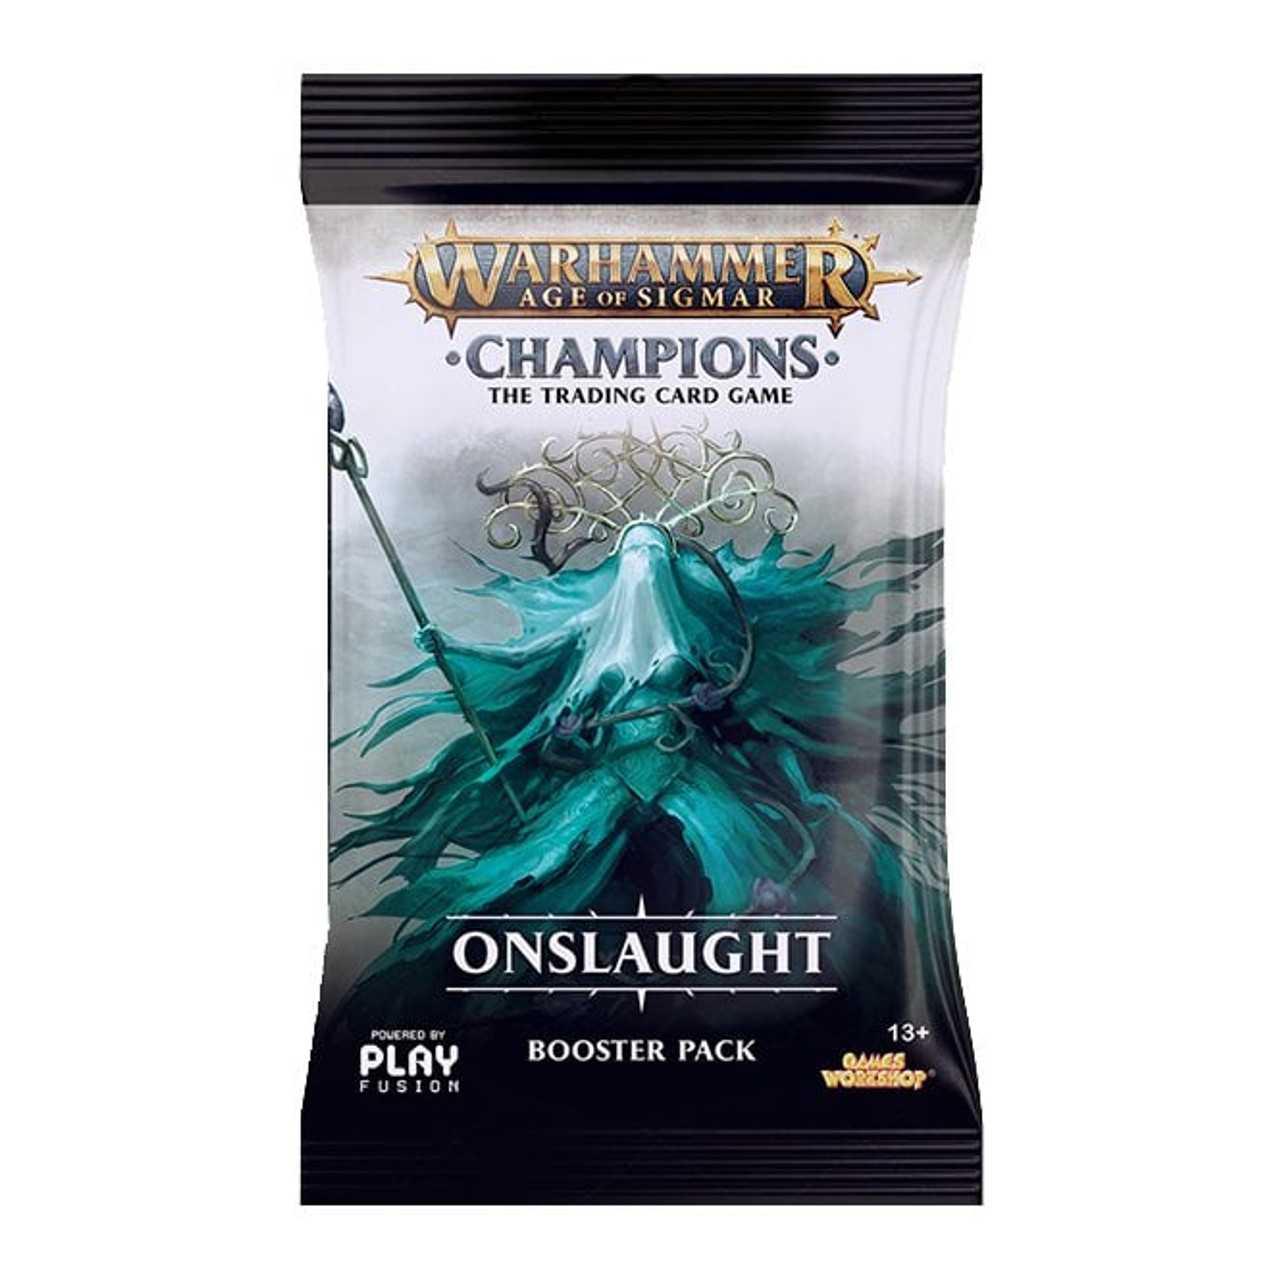 Warhammer Age of Sigmar Champions TCG - Onslaught Booster Pack